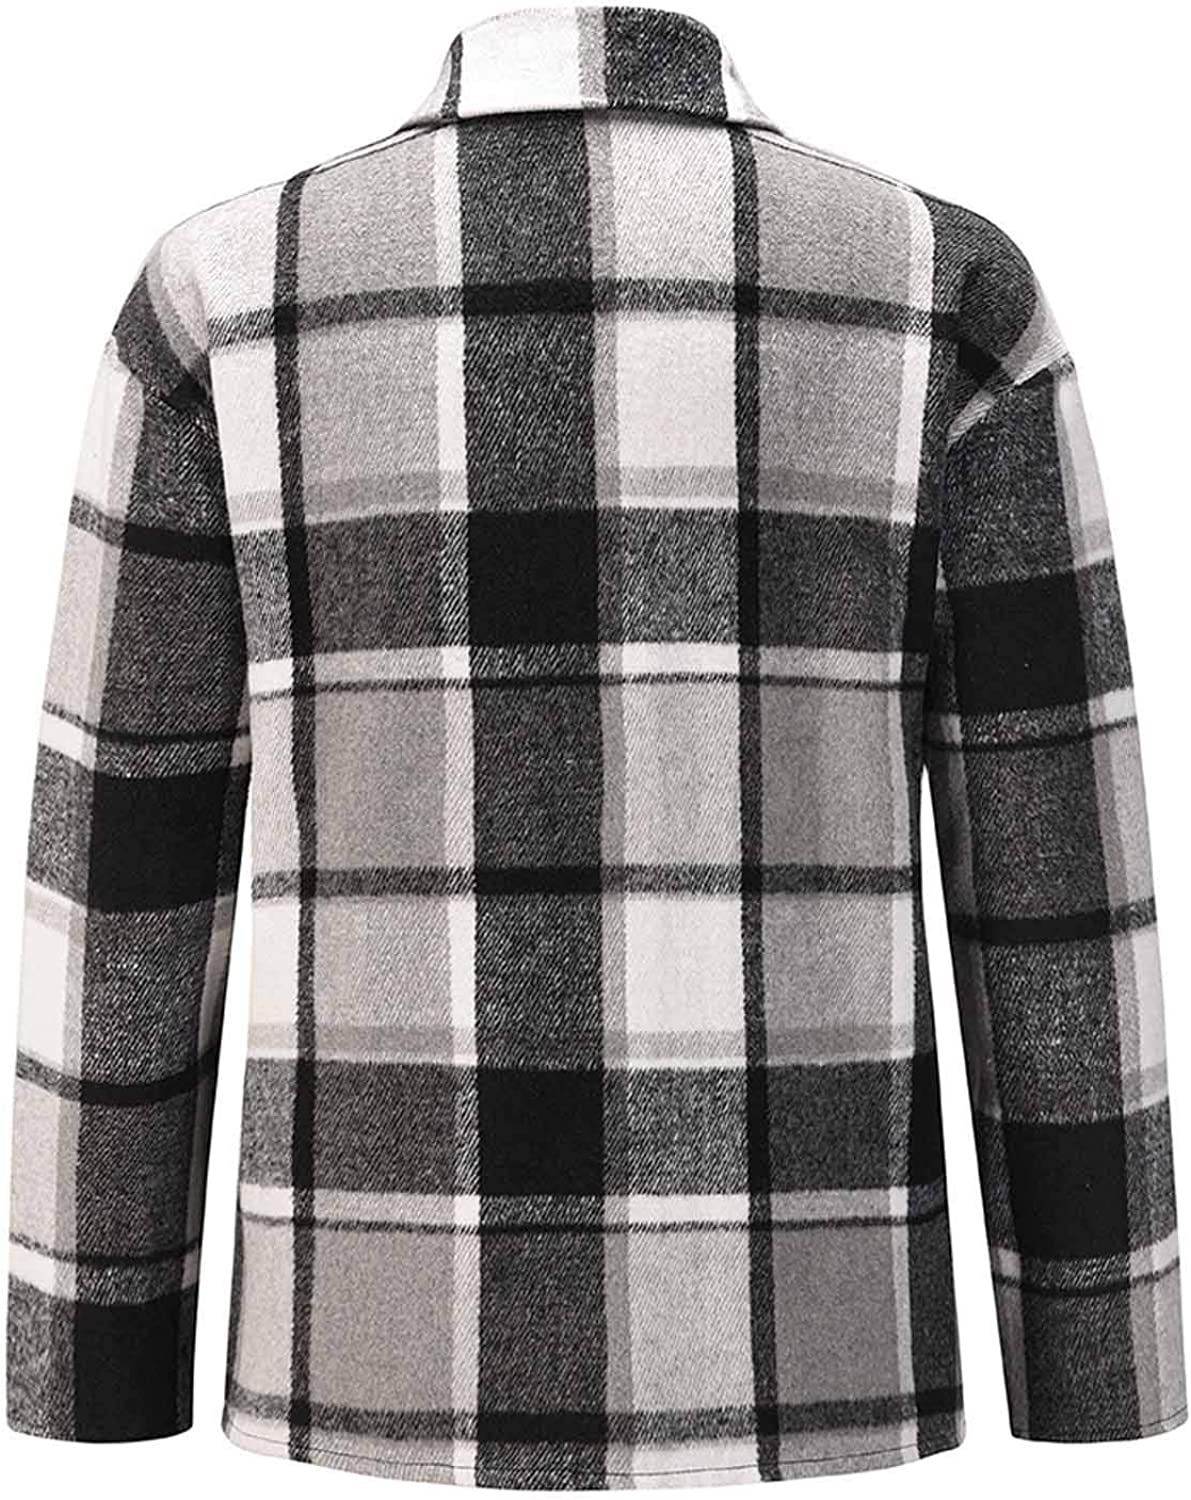 Gray 01, Small Womens Casual Color Block Plaid Wool Blend Shirt Jacket Coat Long Sleeve Button Down Cardigan Tops